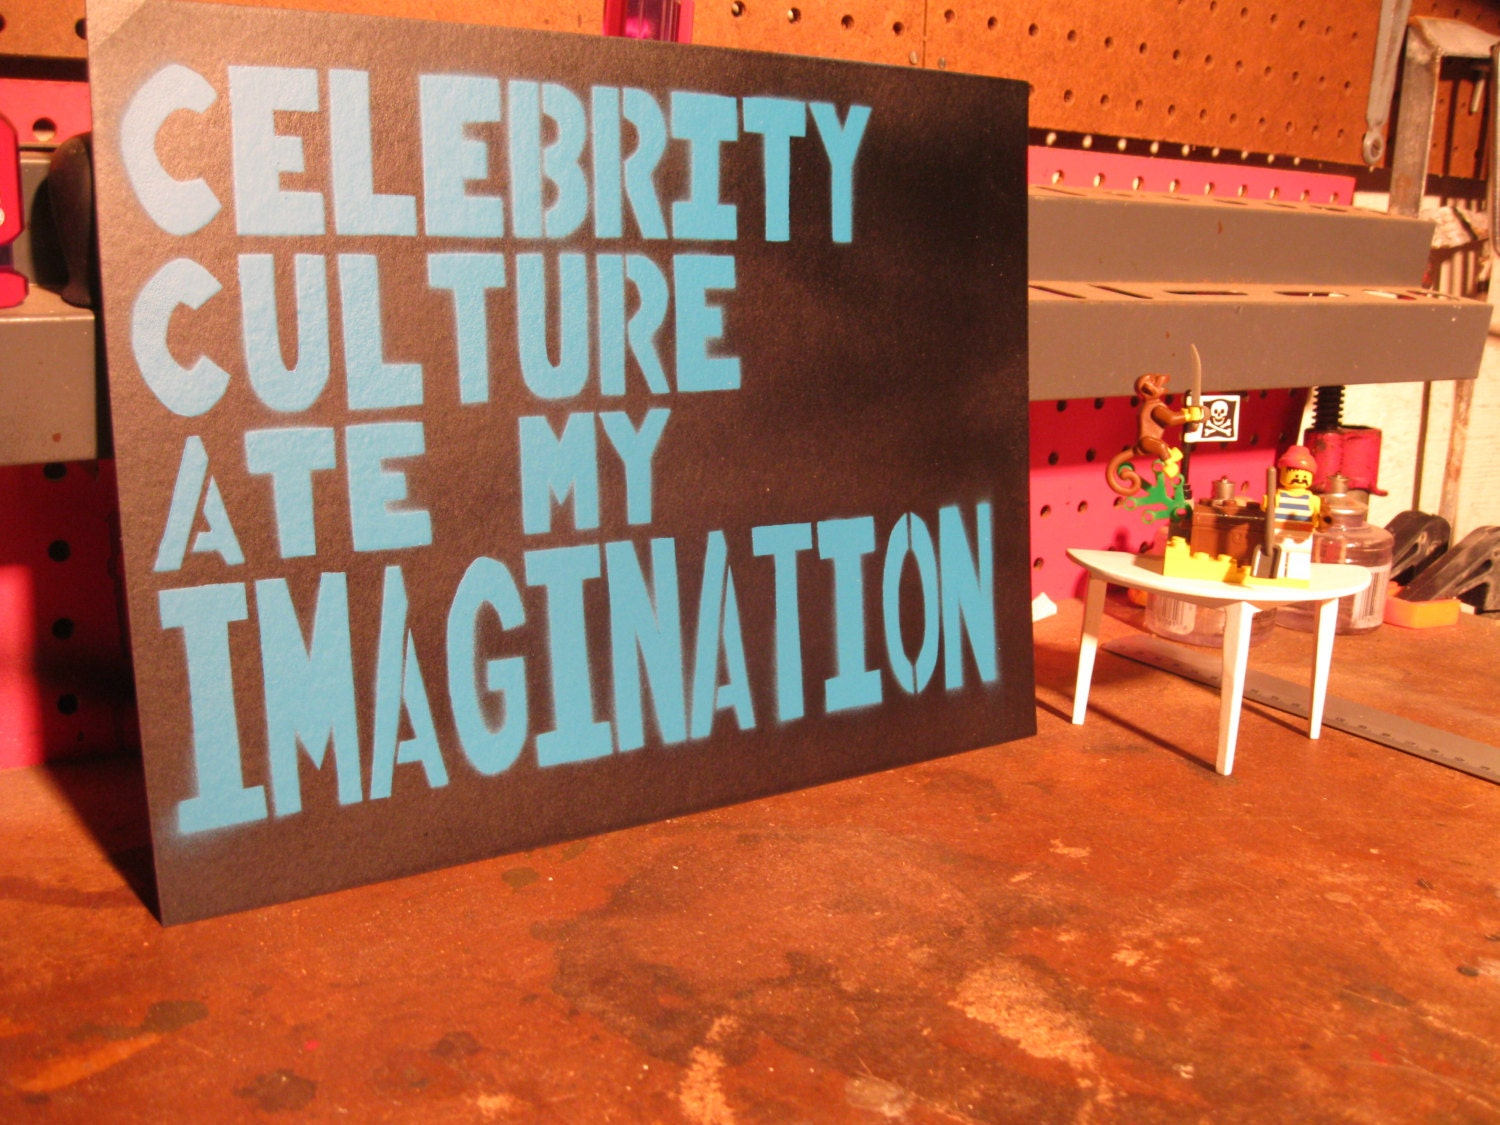 ... Paper arts, Symbolism, Paper, Canvas, Culture, Pop Culture / celebrity